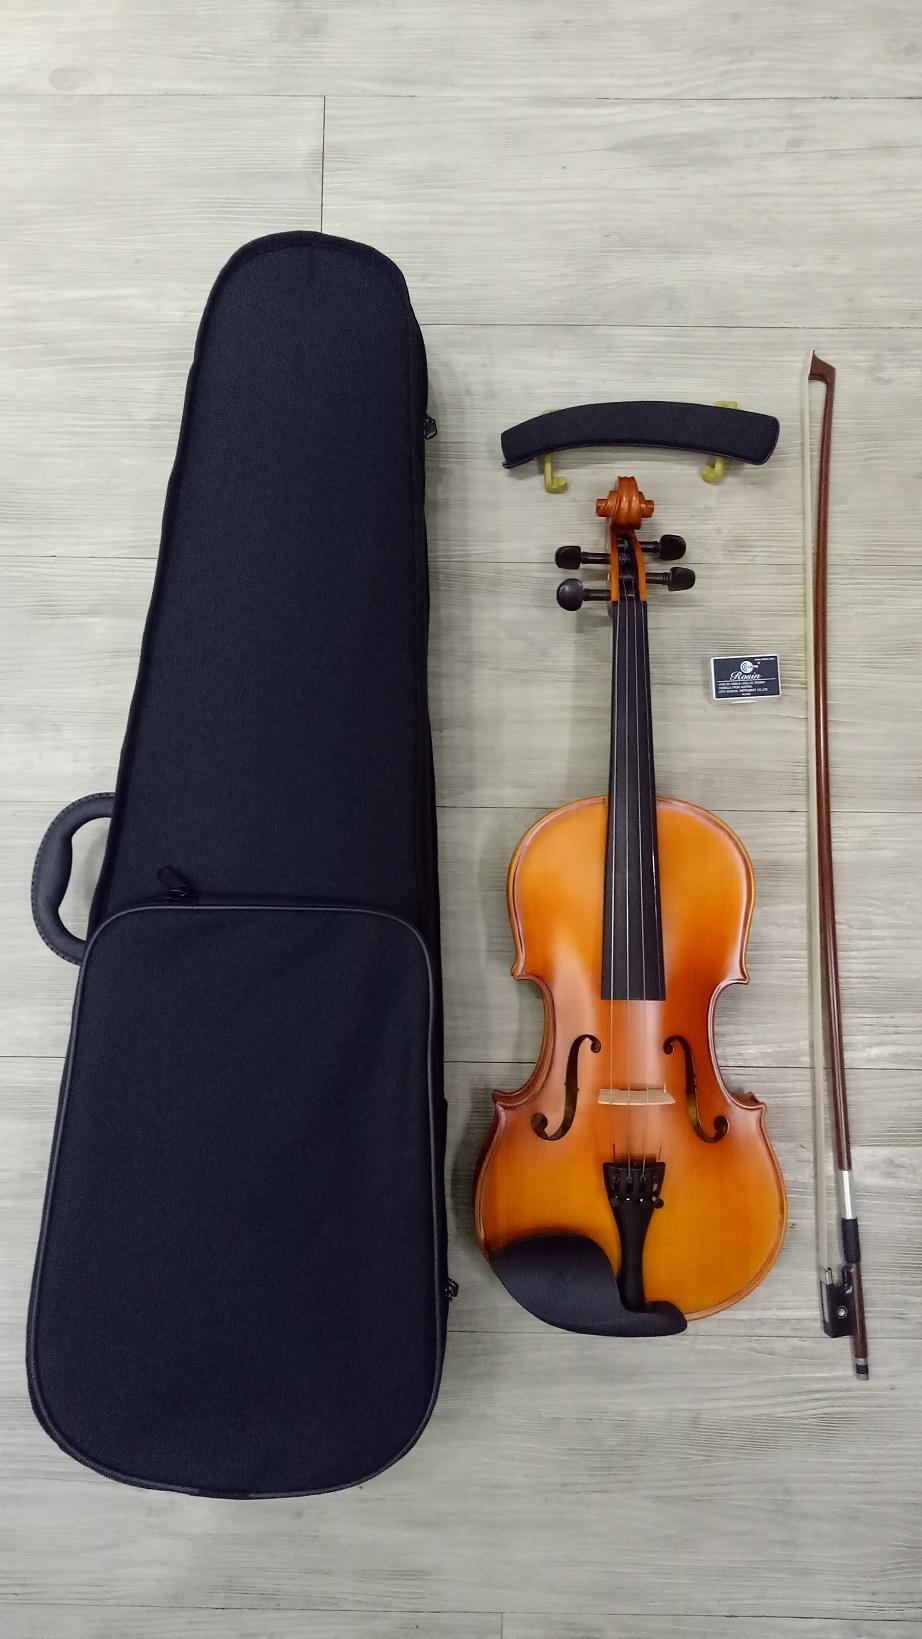 1/8 Antonio Stradivari American Brand Handcrafted Violin With Violin Shaped Case, Bow, Rosin And Free Shoulder Rest.